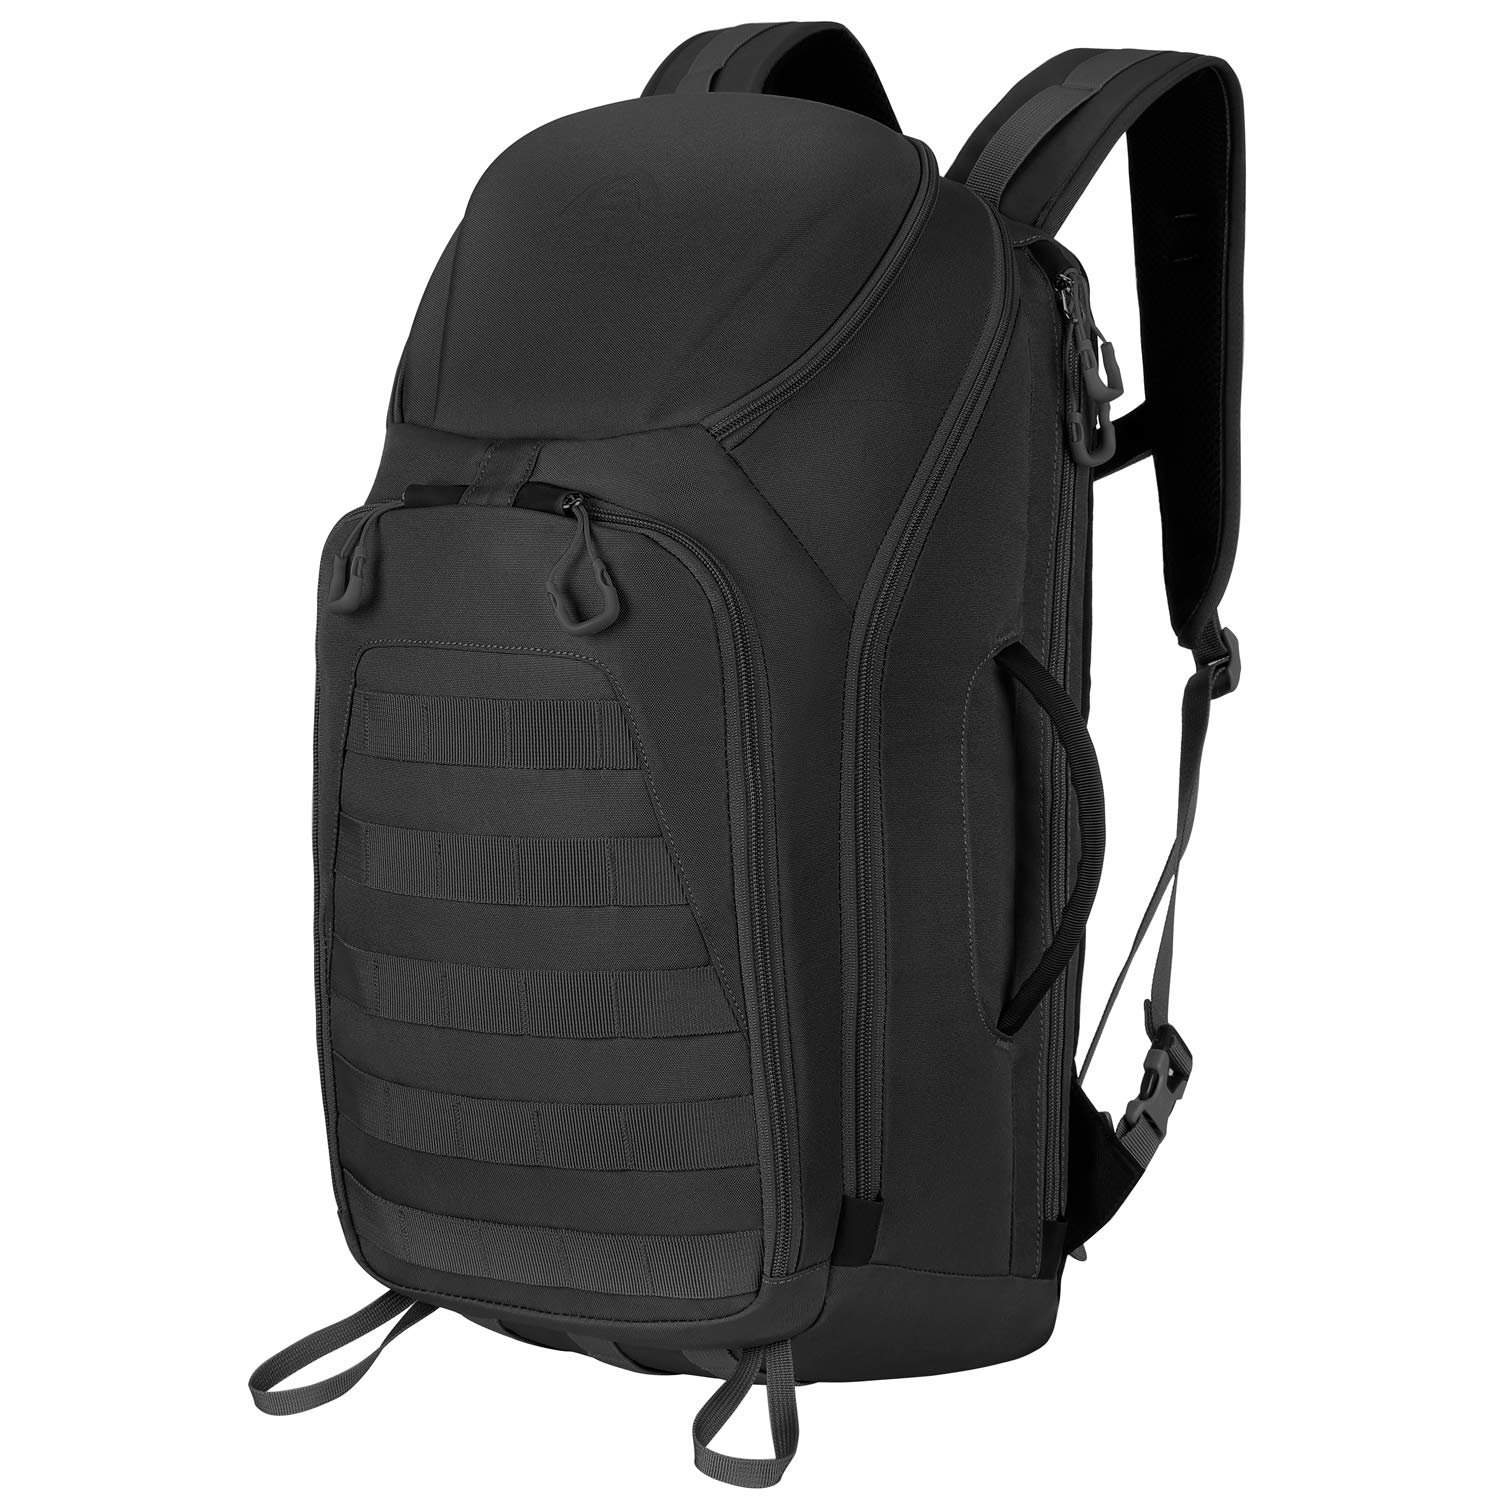 Aione Tactical Backpack Military Army Backpack Daypack 25L/30L/32L/50L Assault Pack Bug Out Bag with Hard Shell Top Pocket